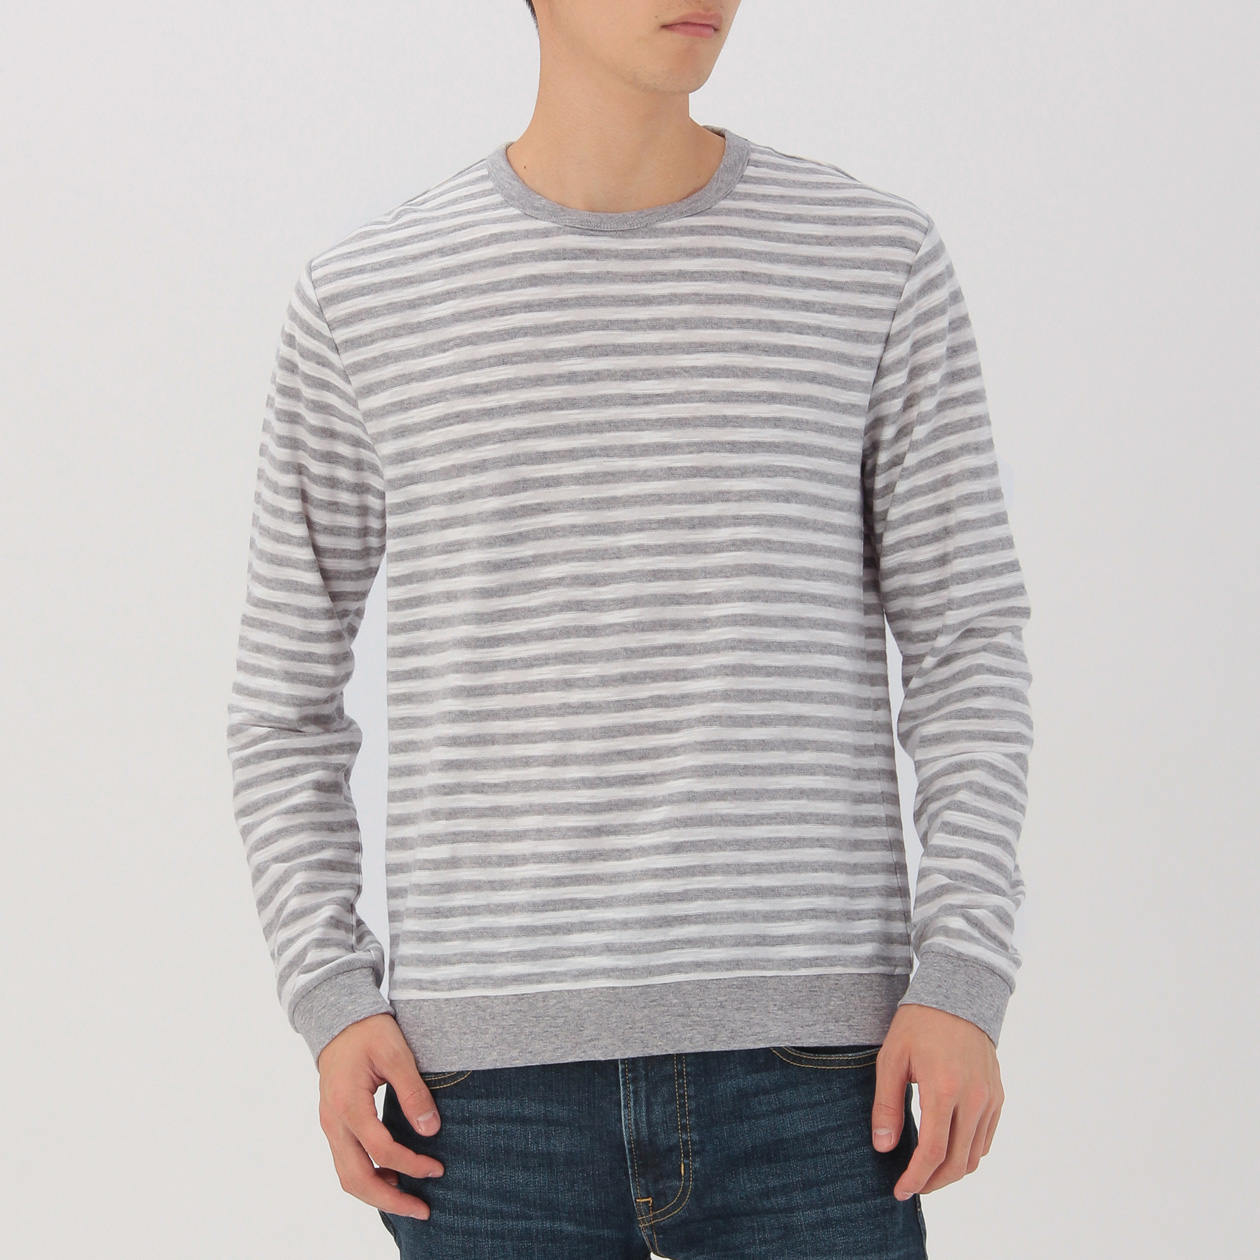 OGC UNEVEN YARN BORDER CREW NECK L/S T SHIRT